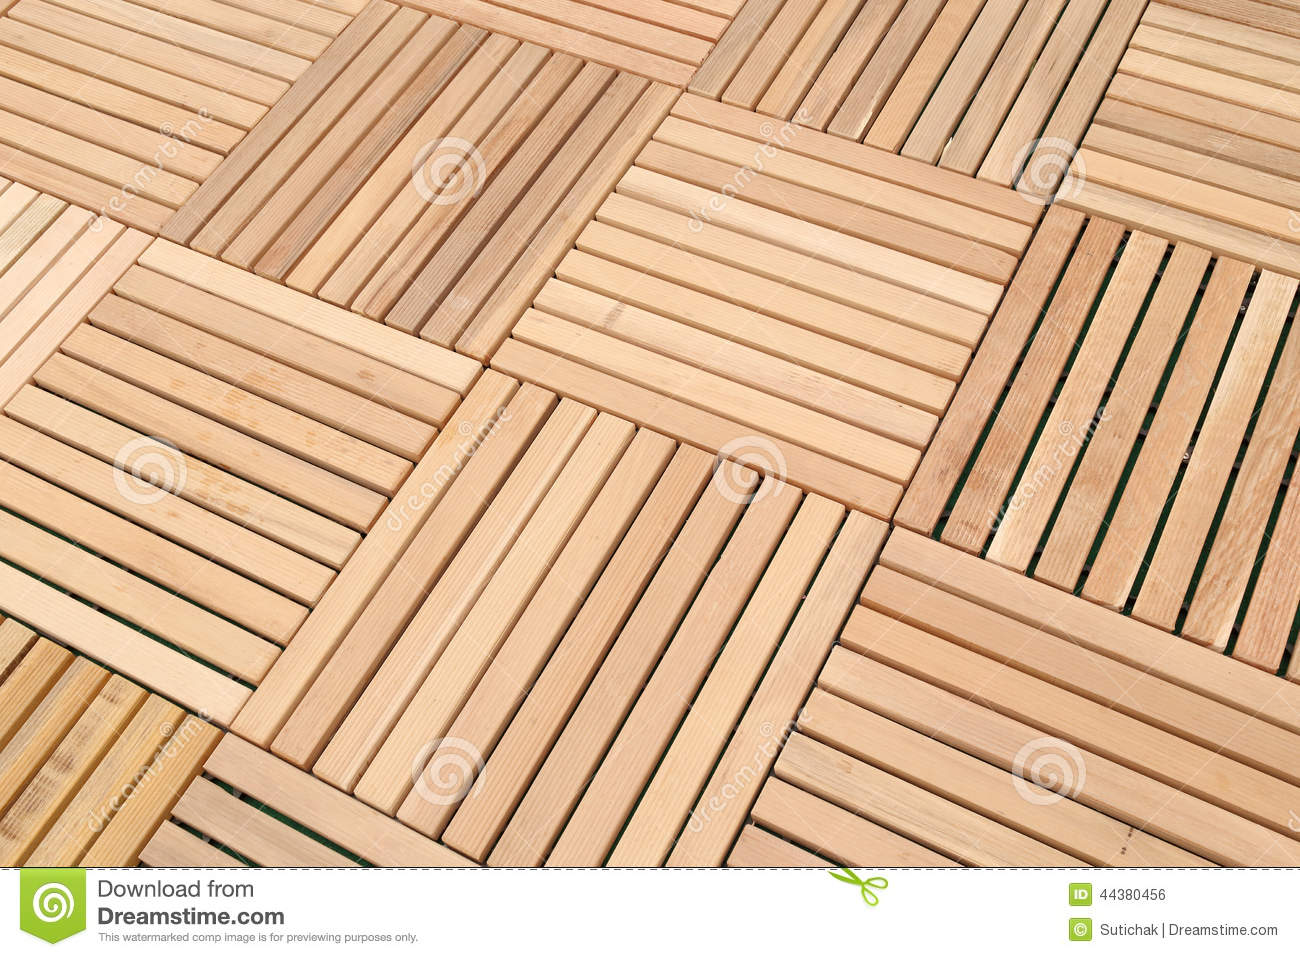 Superb img of Wood Deck Panel Floor Background Stock Photo Image: 44380456 with #B1671A color and 1300x957 pixels